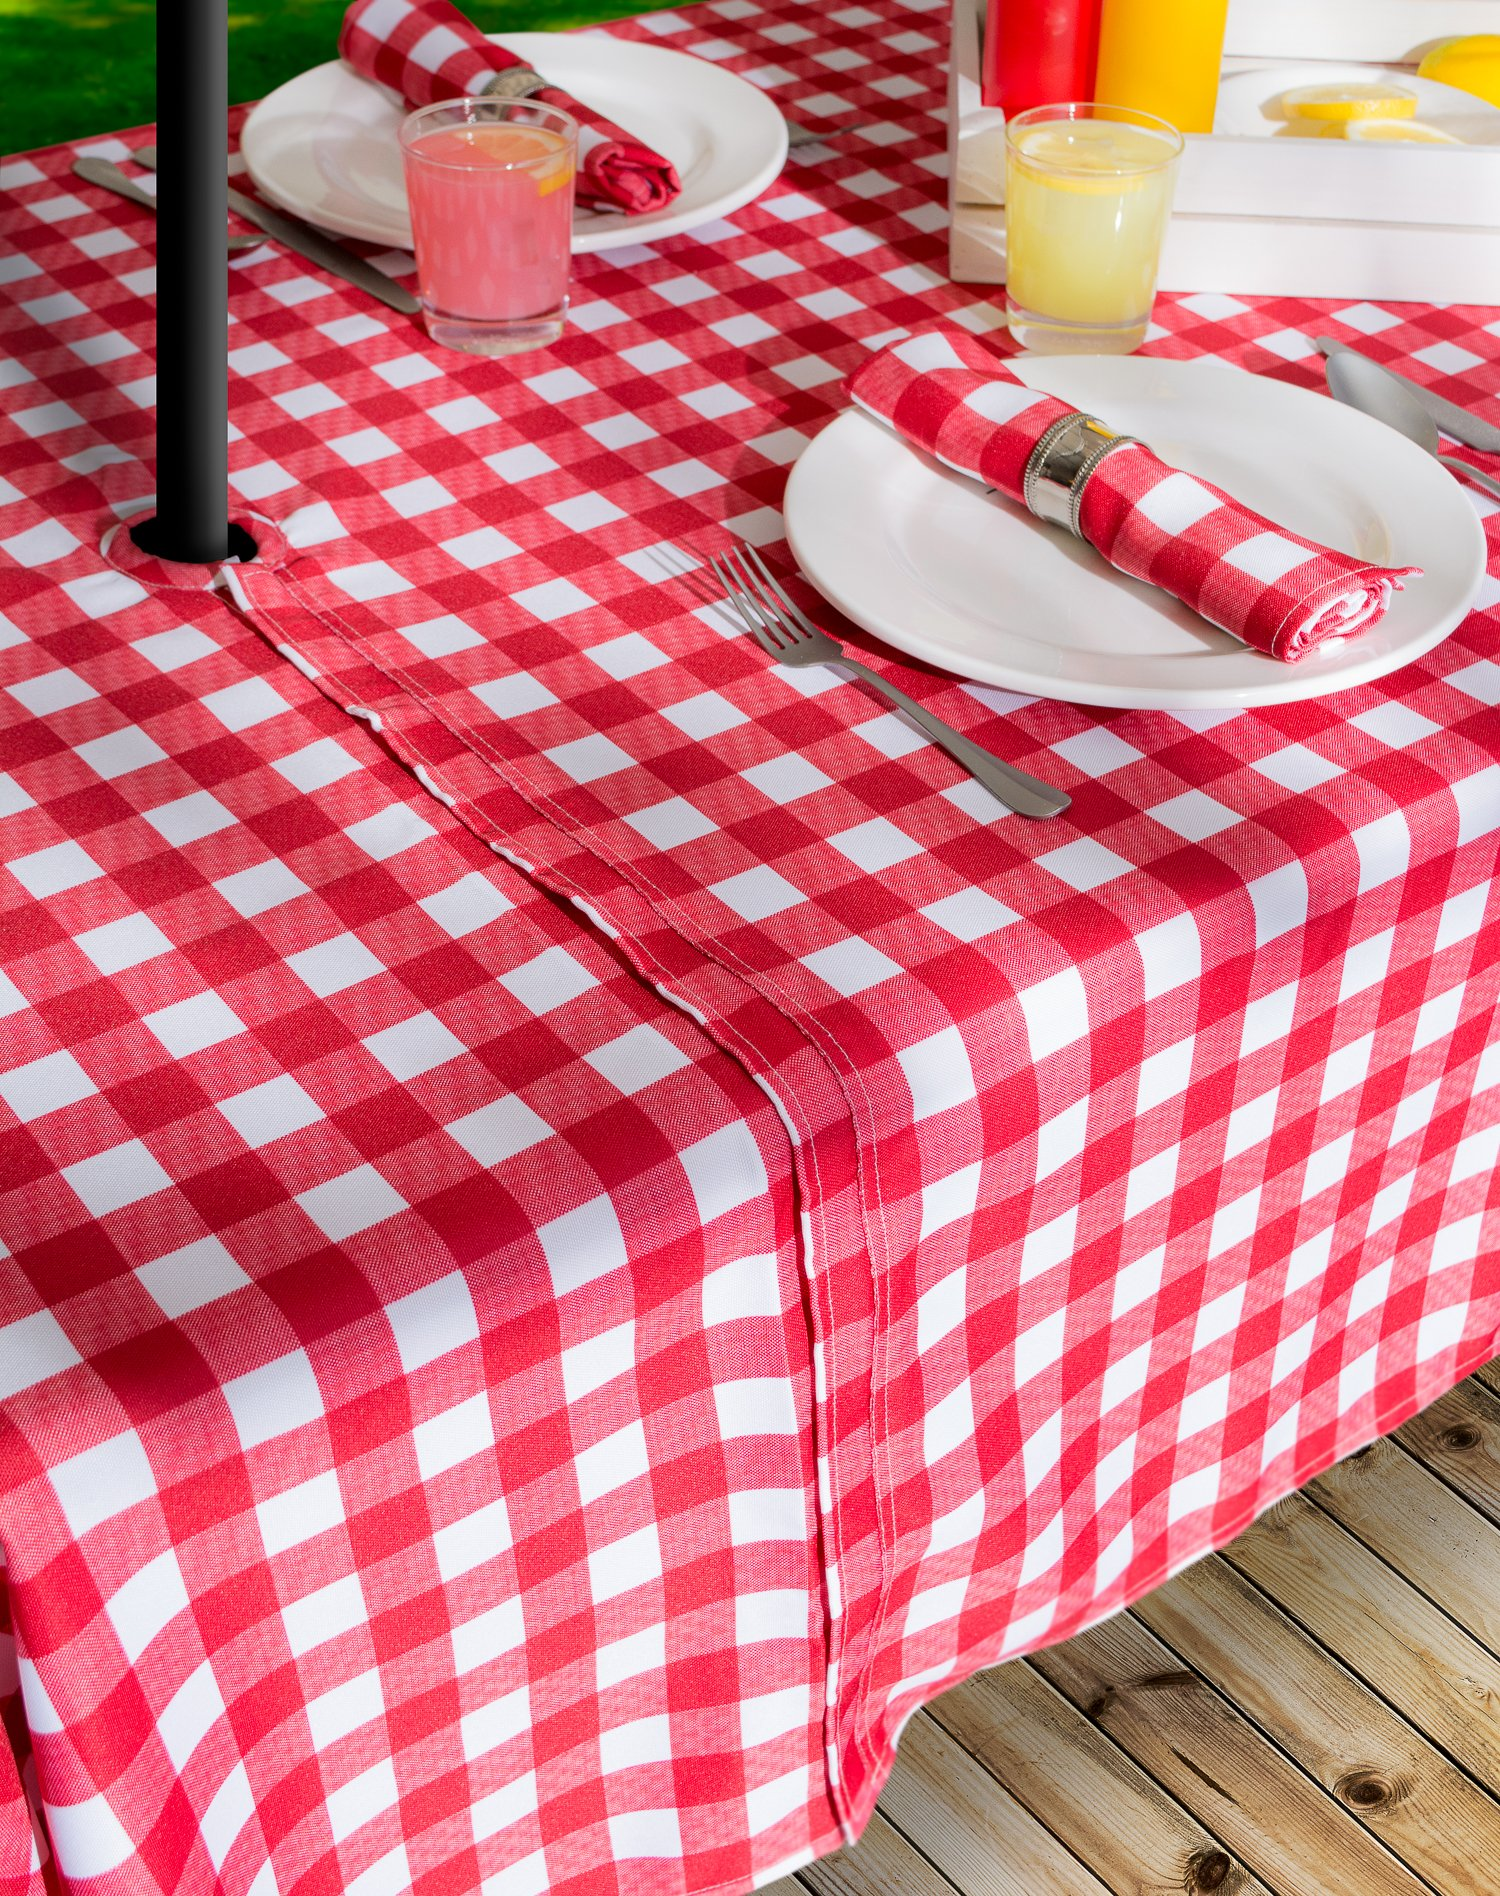 DII Spring & Summer Outdoor Tablecloth, Spill Proof and Waterproof with Zipper and Umbrella Hole, Host Backyard Parties, BBQs, & Family Gatherings - (60x120'' - Seats 10 to 12) Red Check by DII (Image #7)